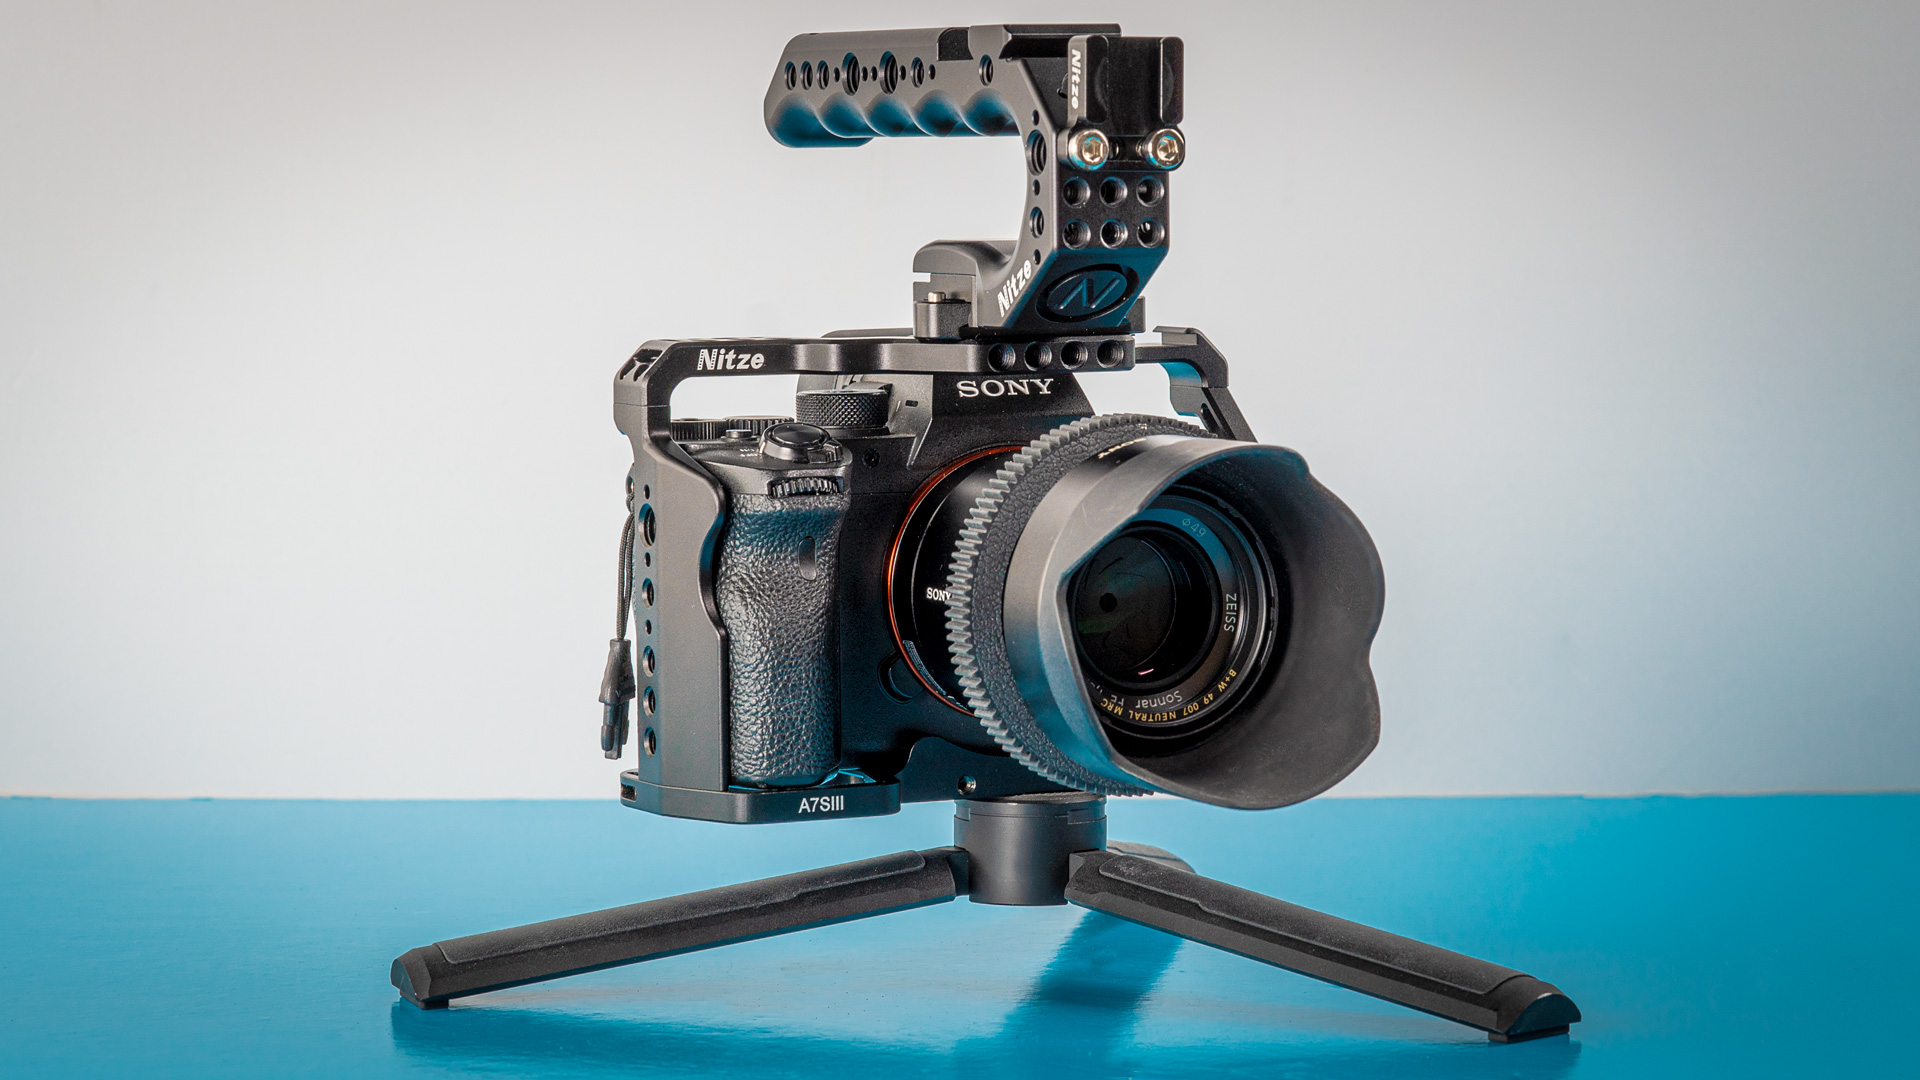 Nitze-Cage-for-Sony-aS7III-and-Stinger-Handle